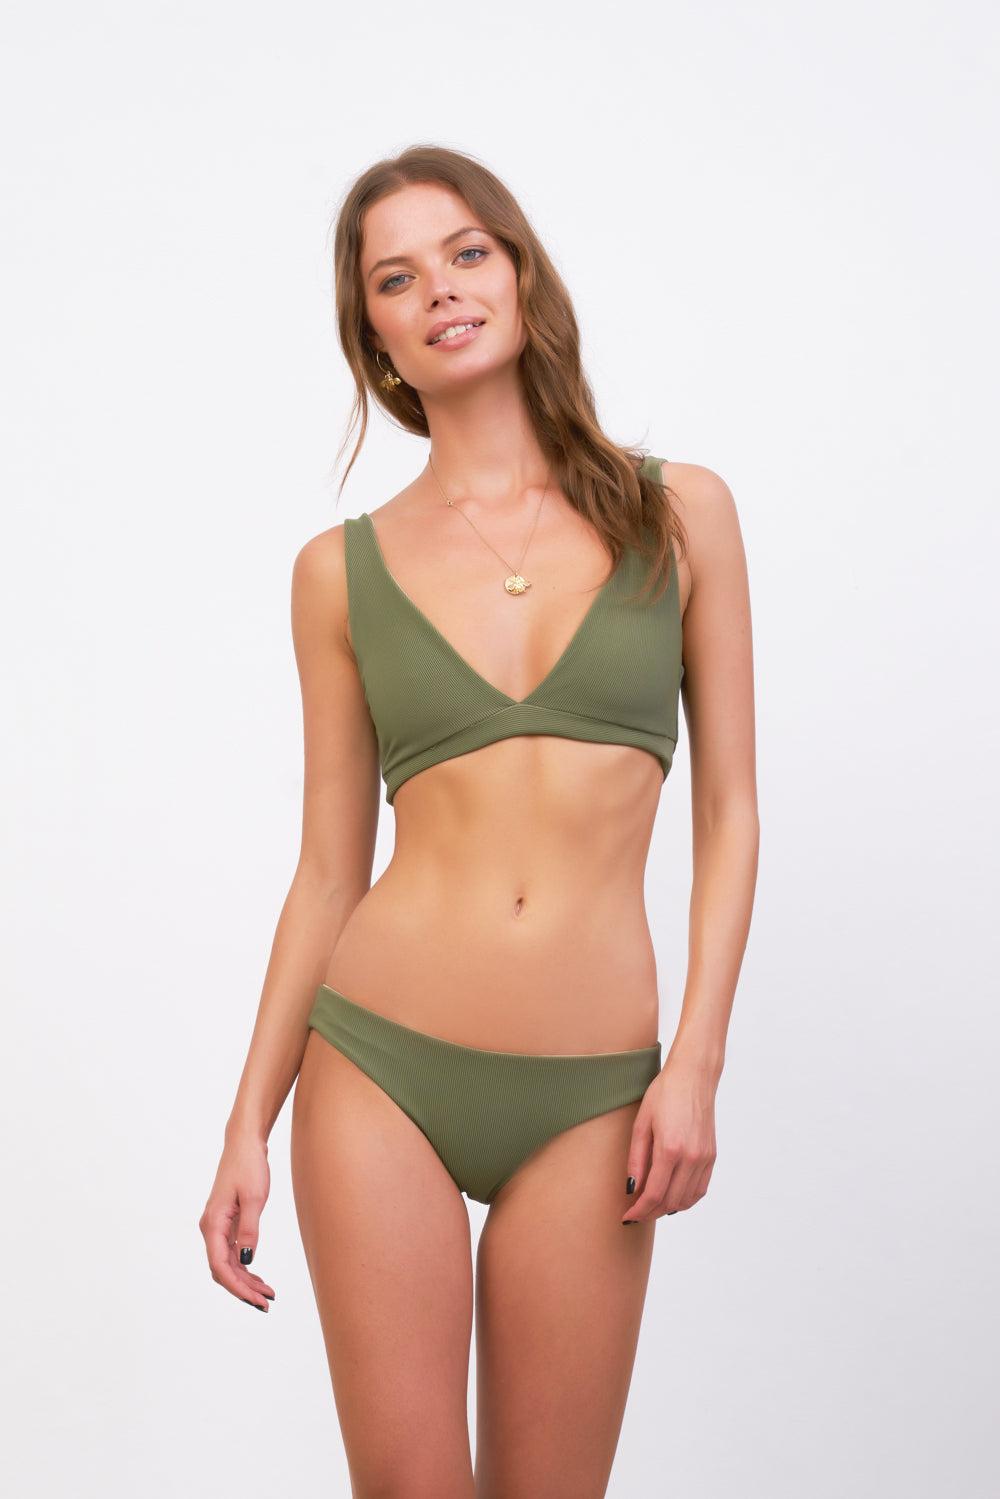 Storm Swimwear - Crete - Coverage top in Jungle Corduroy